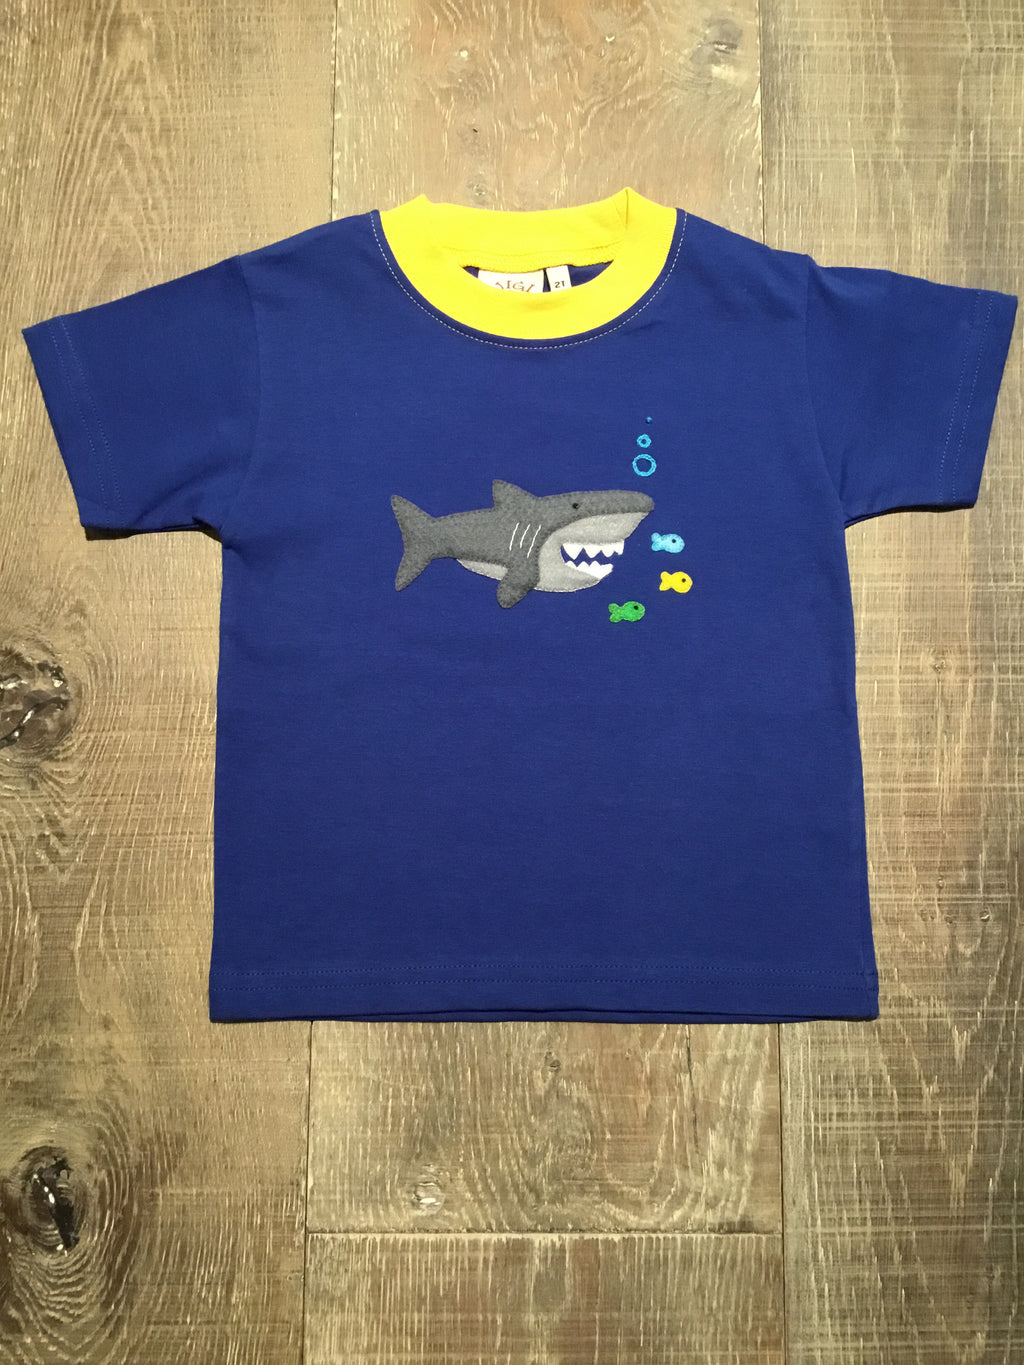 Shark Eating Fish Short Sleeve Shirt